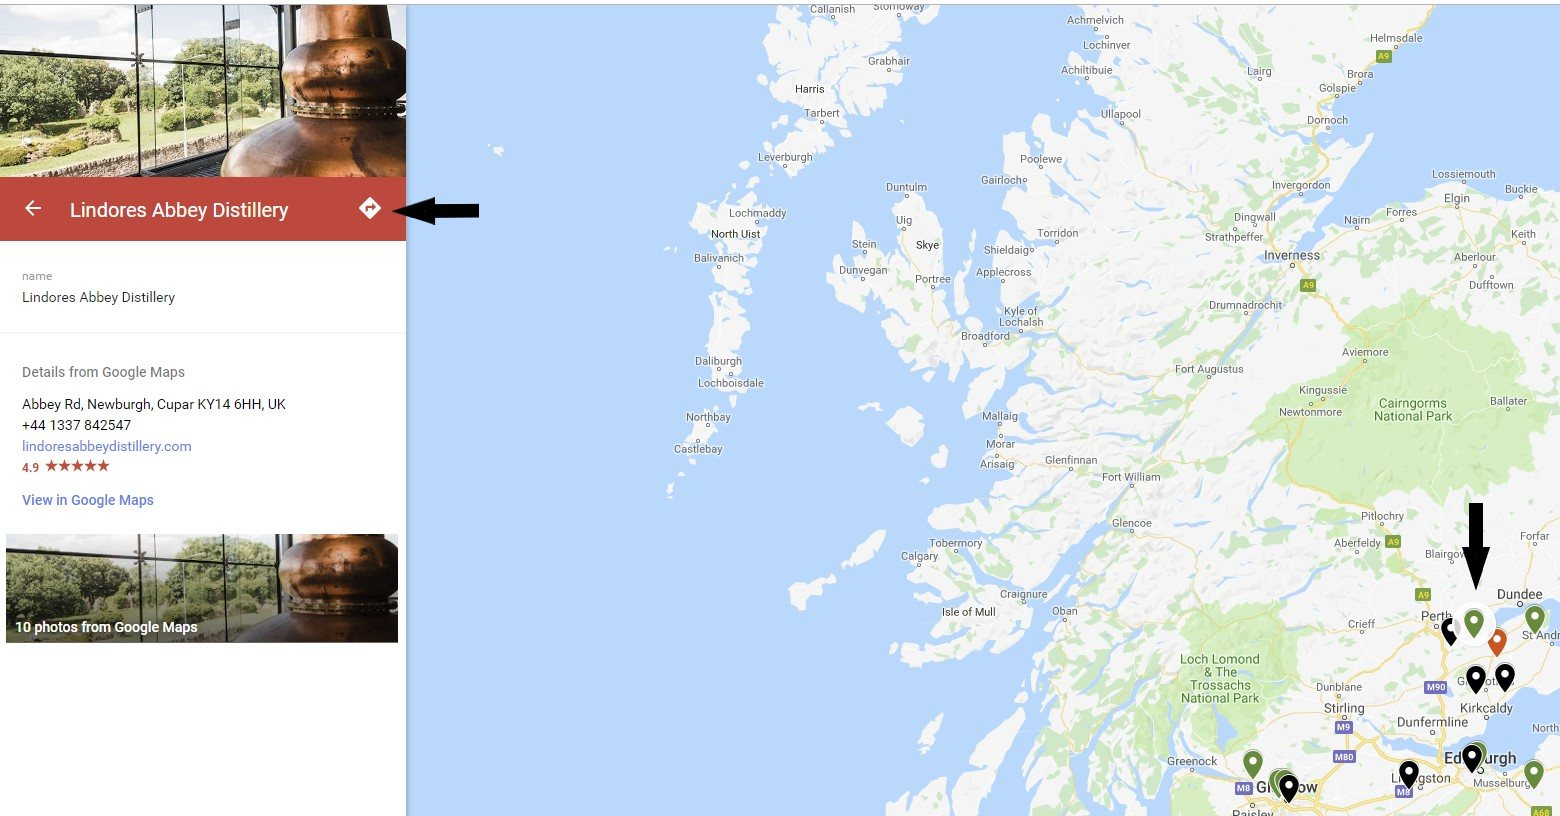 Use the Scotland Whisky Distillery Map to get directions to the next distillery on your tour